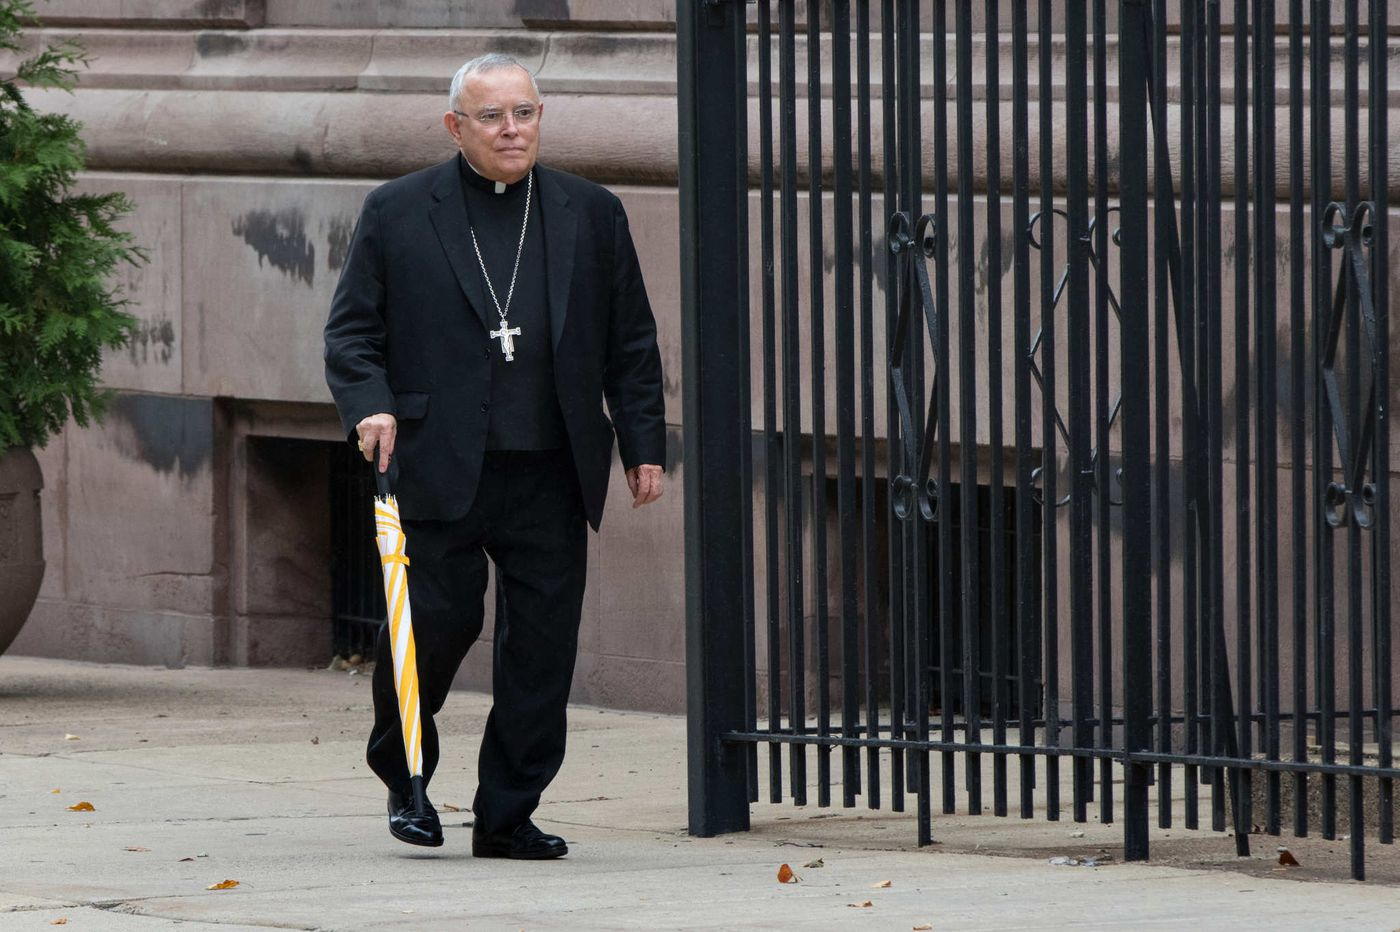 Yet again, Archbishop Chaput foolishly misses the mark in a time of crisis | Mike Newall